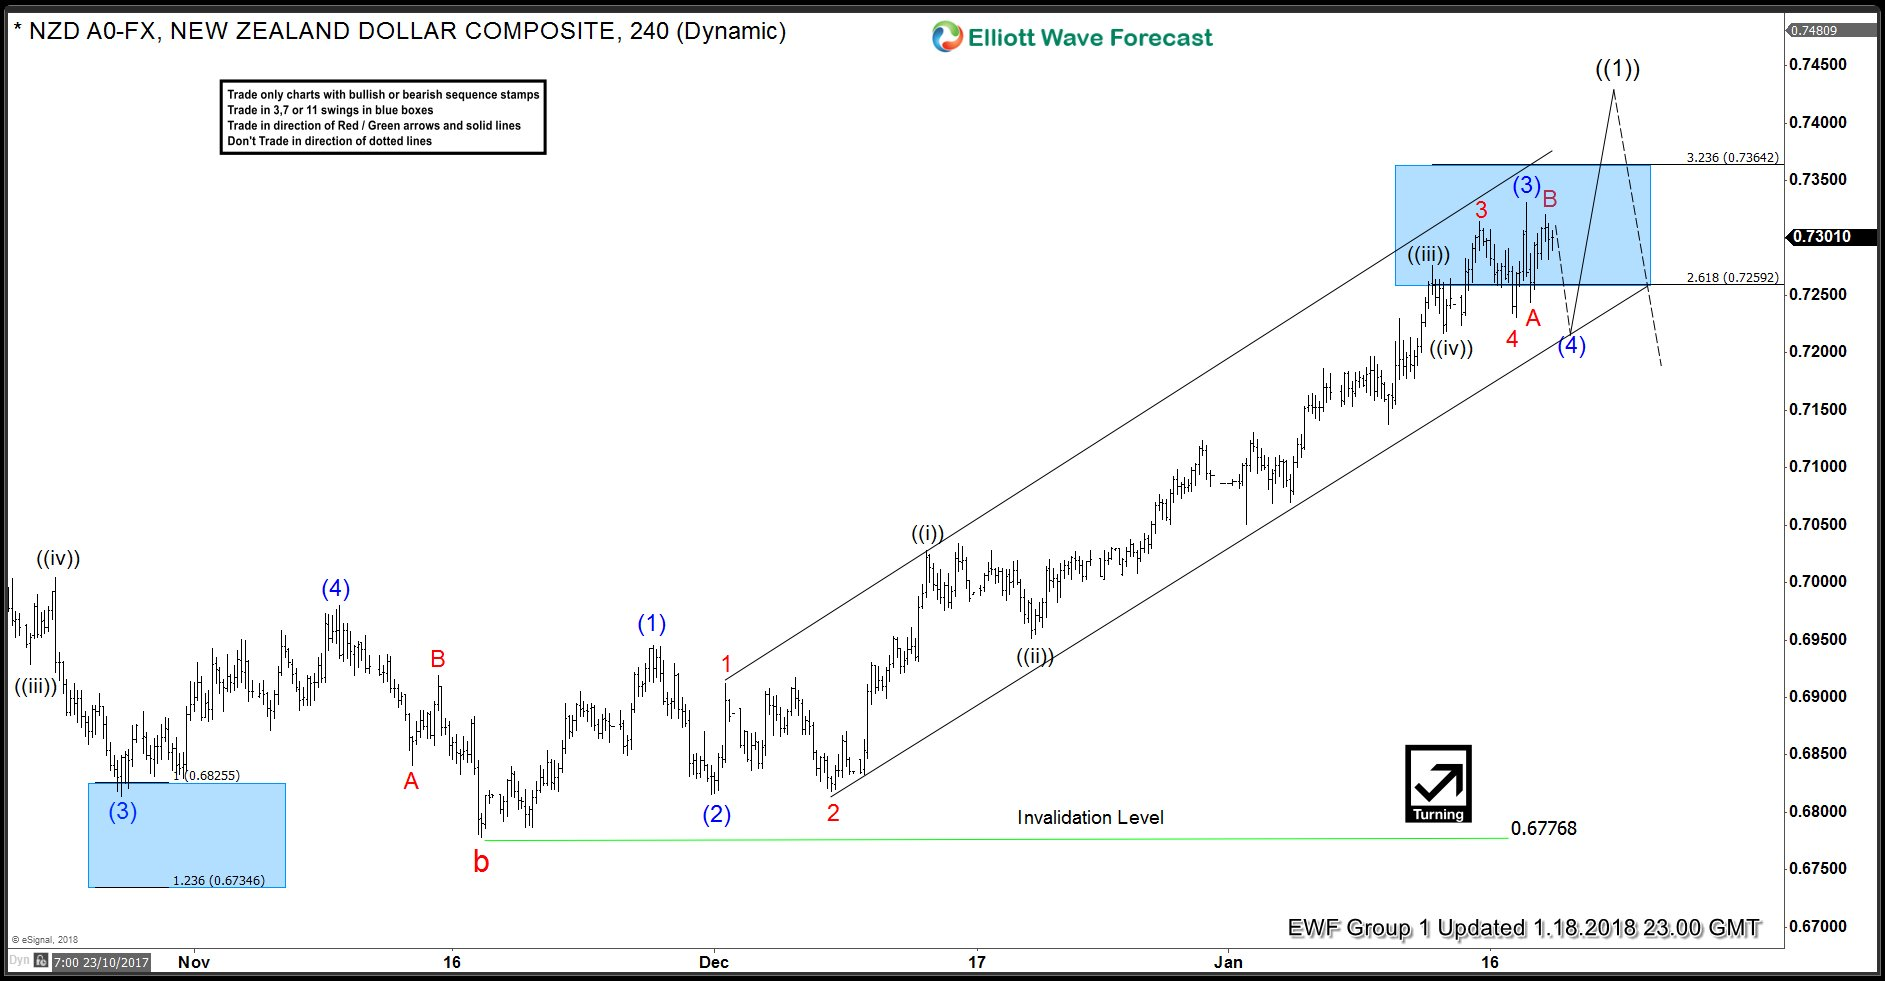 NZDUSD 4 Hour Elliott Wave Analysis 1.18.2017 Alt view